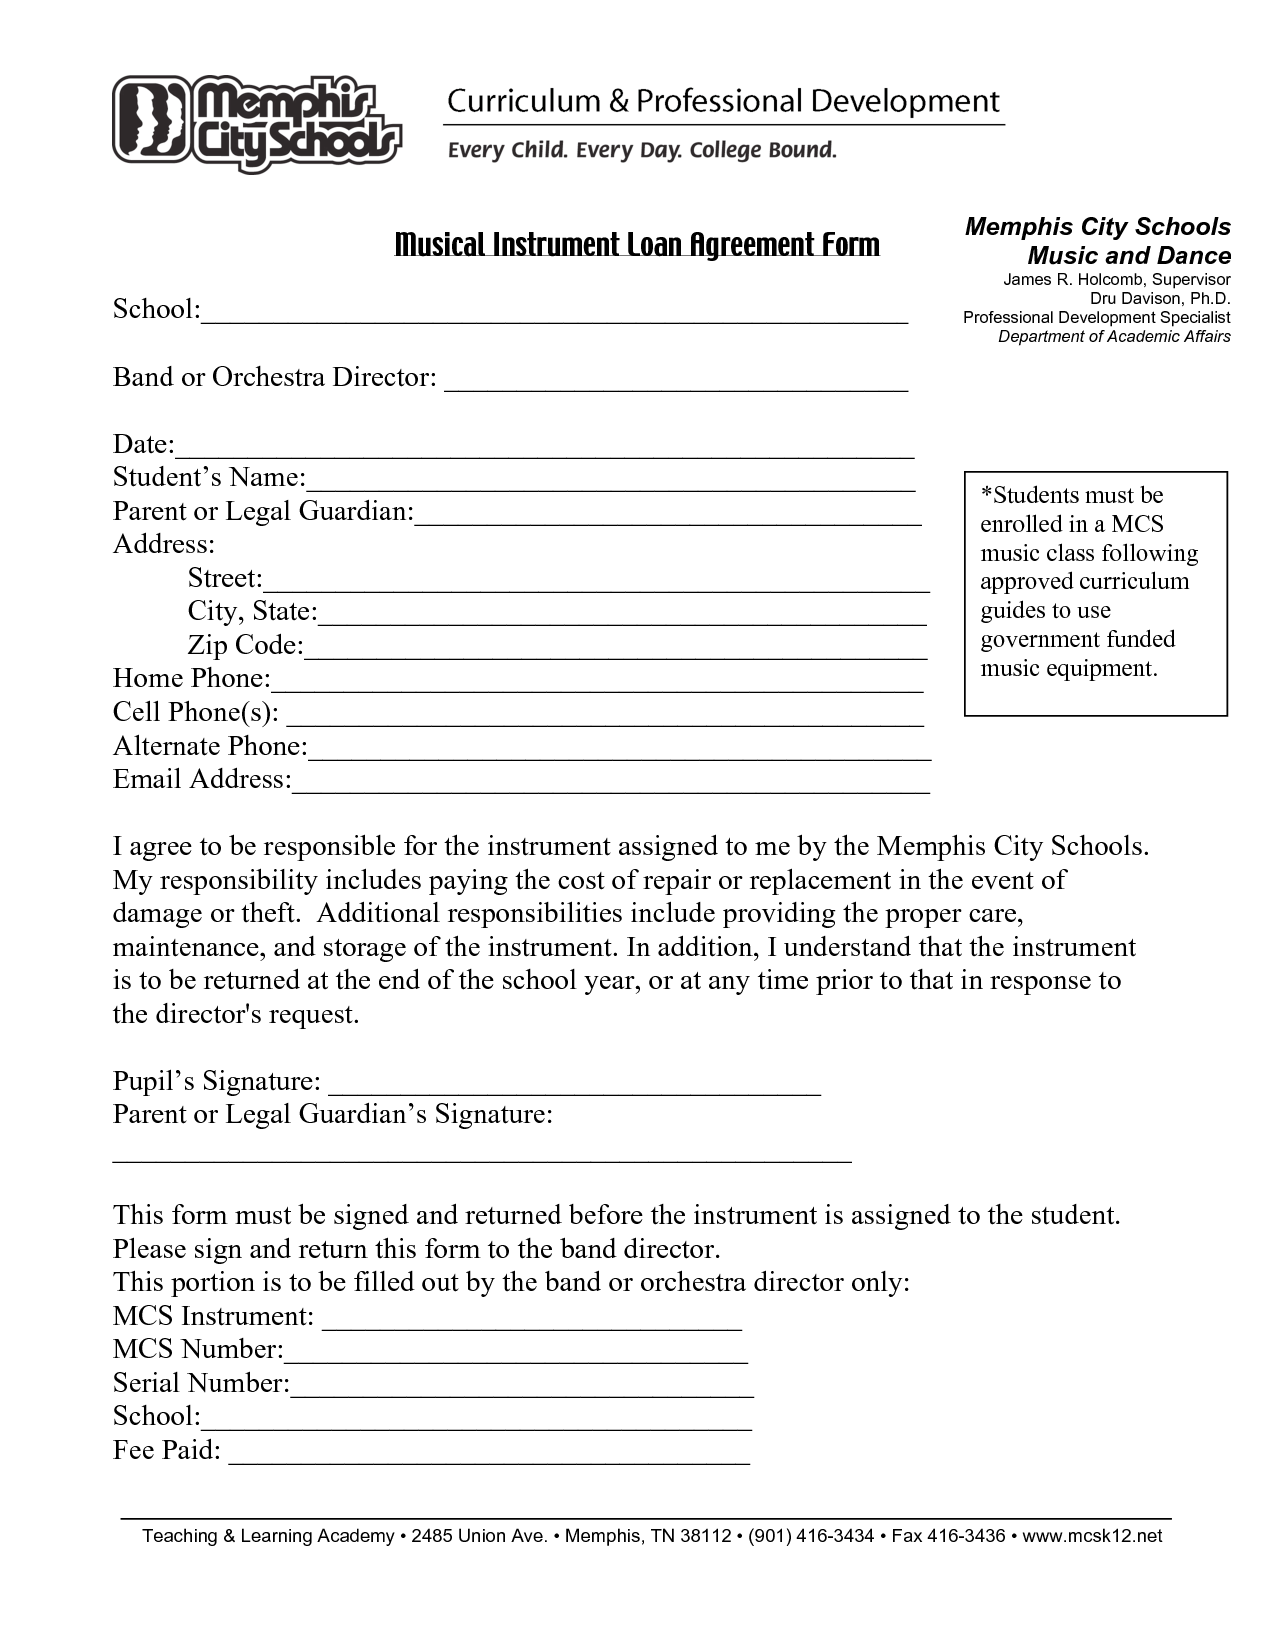 Printable Sample Loan Agreement Form Form | Online Attorney Legal ...